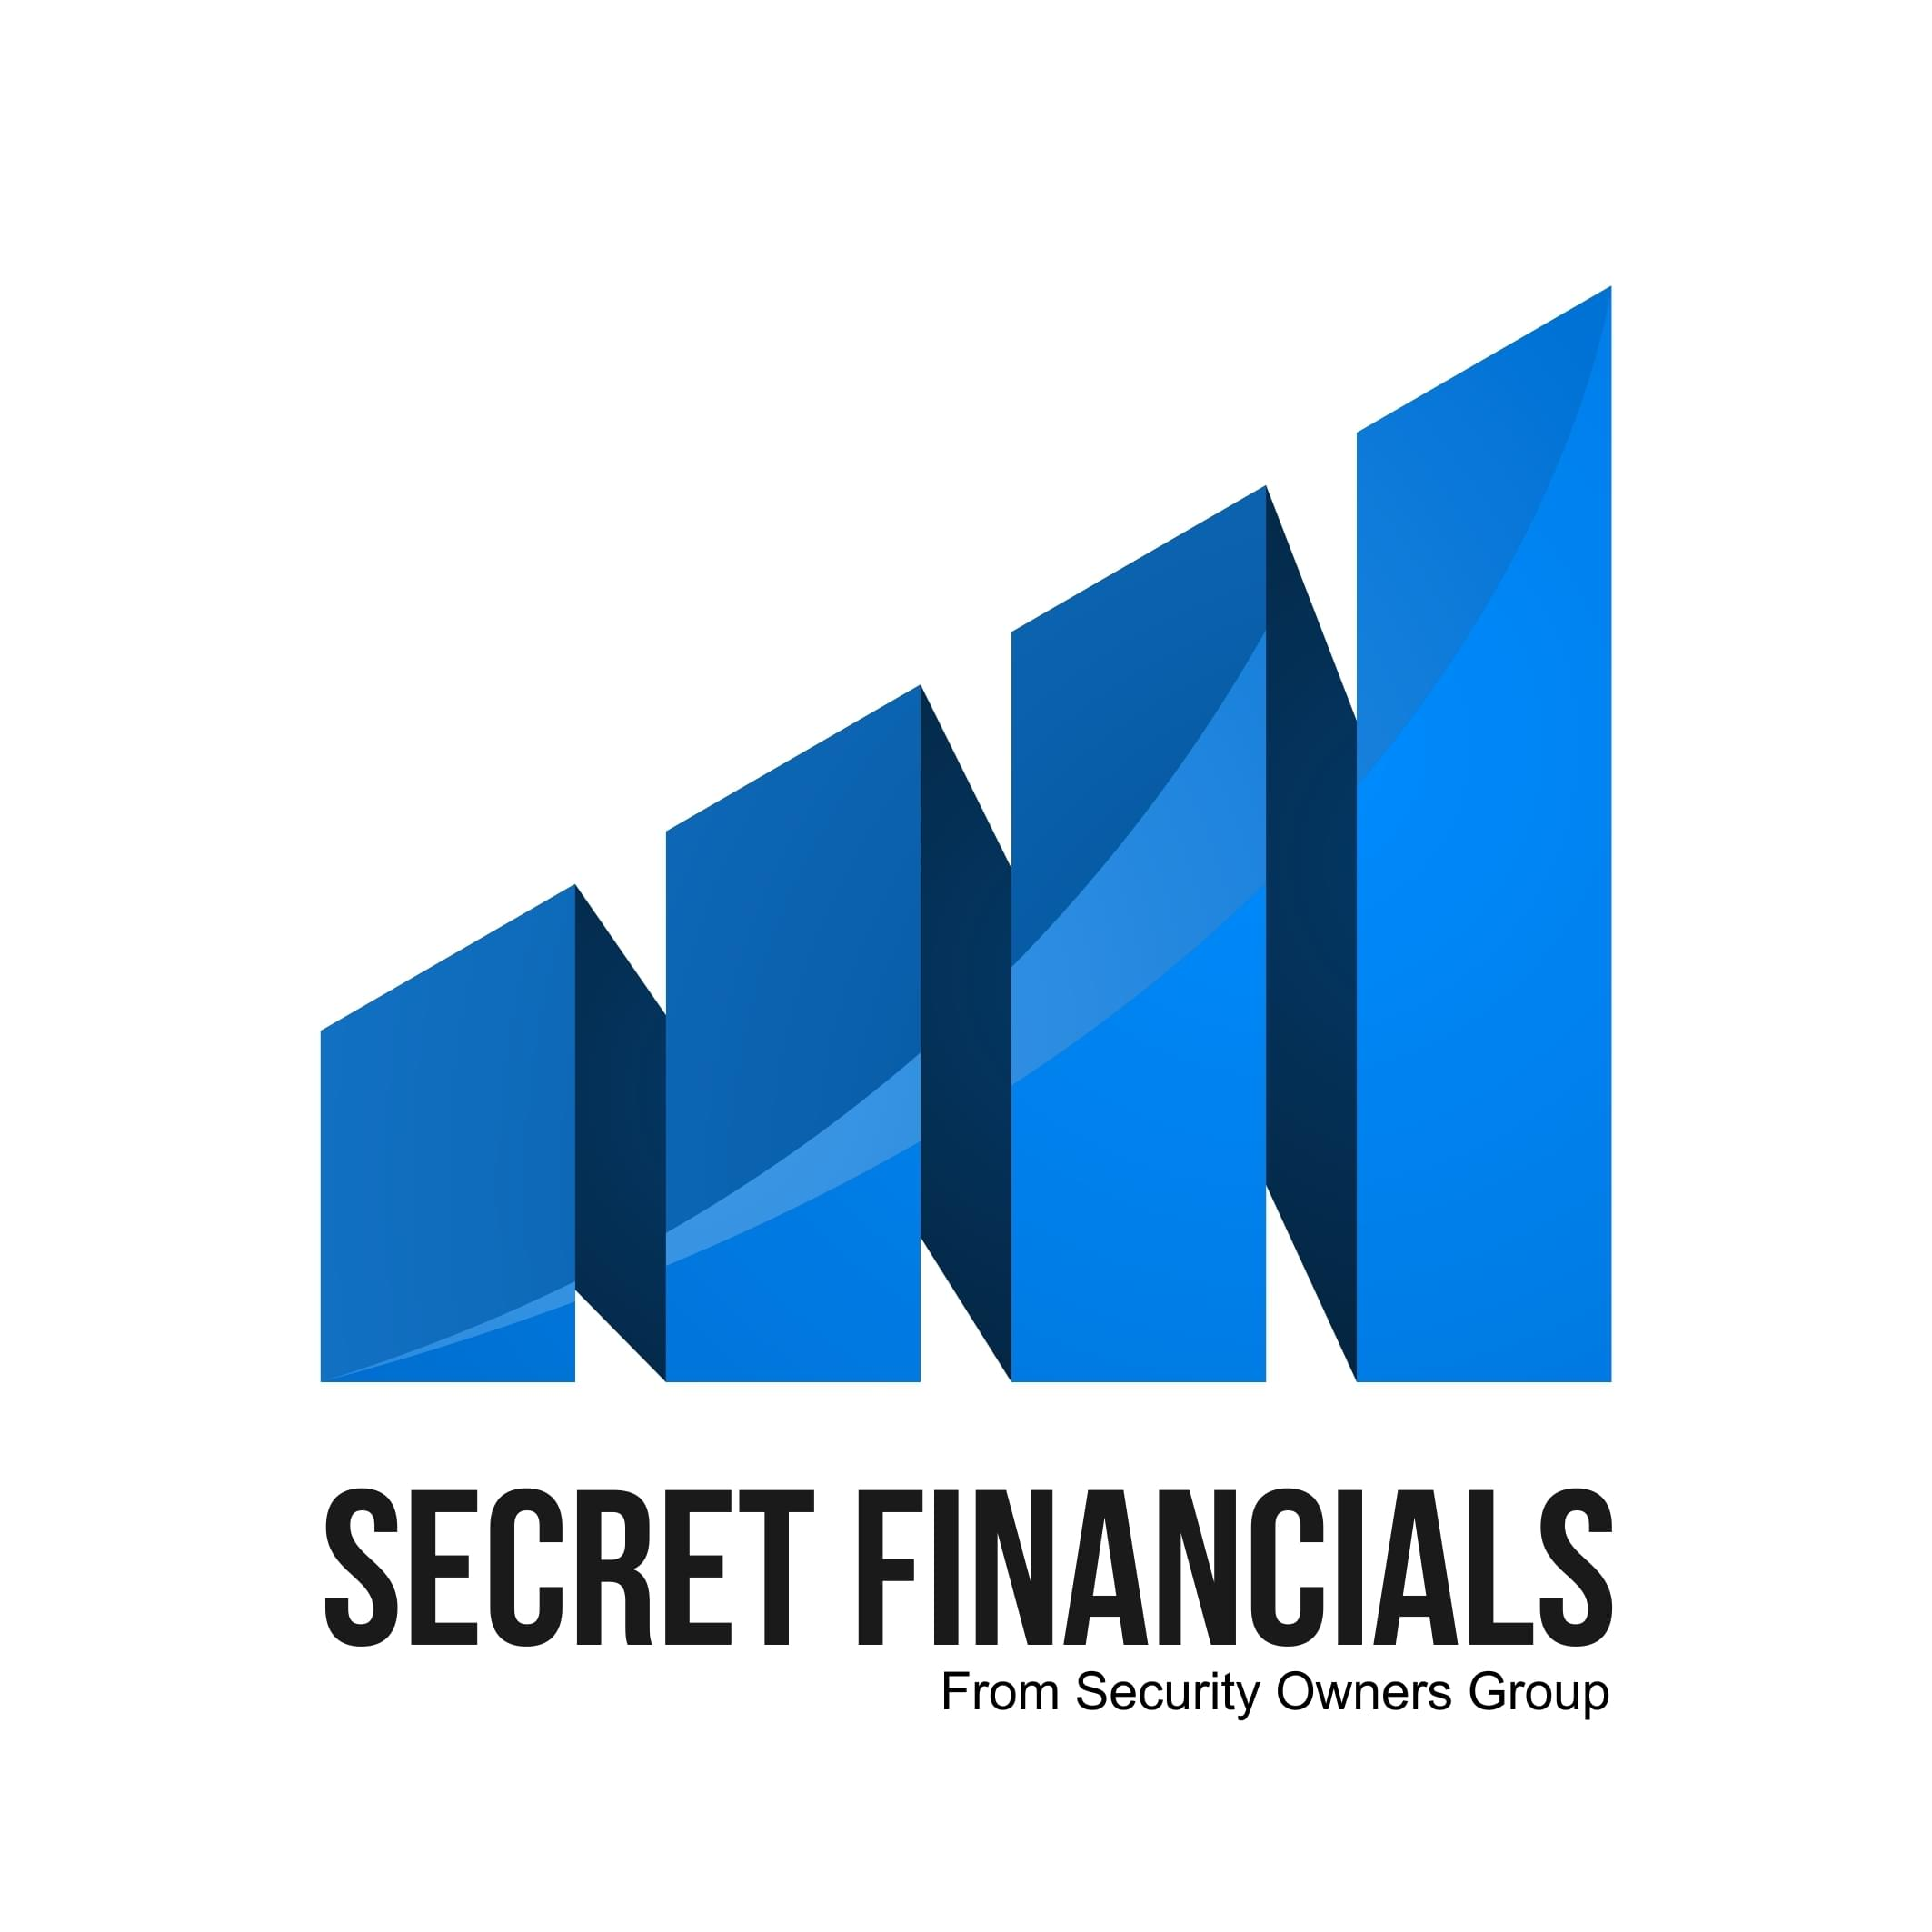 Secret Financials Logo